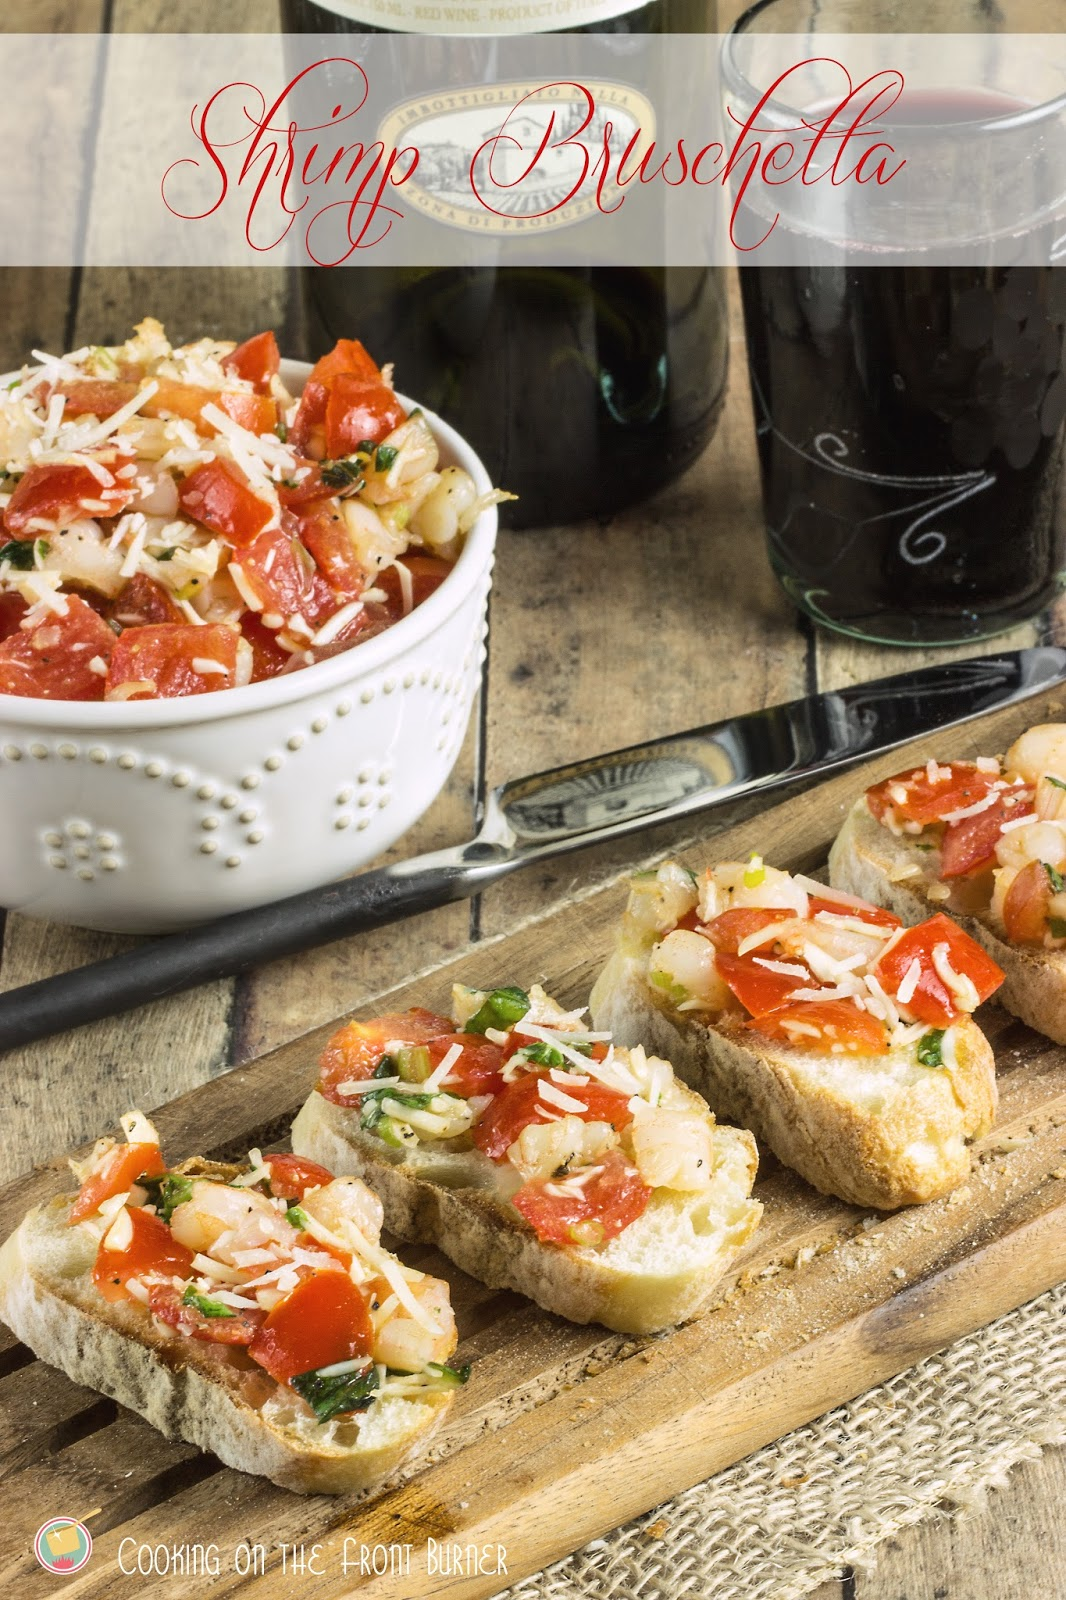 Shrimp Bruschetta | Cooking on the Front Burner #gyco #shrimpbruschetta